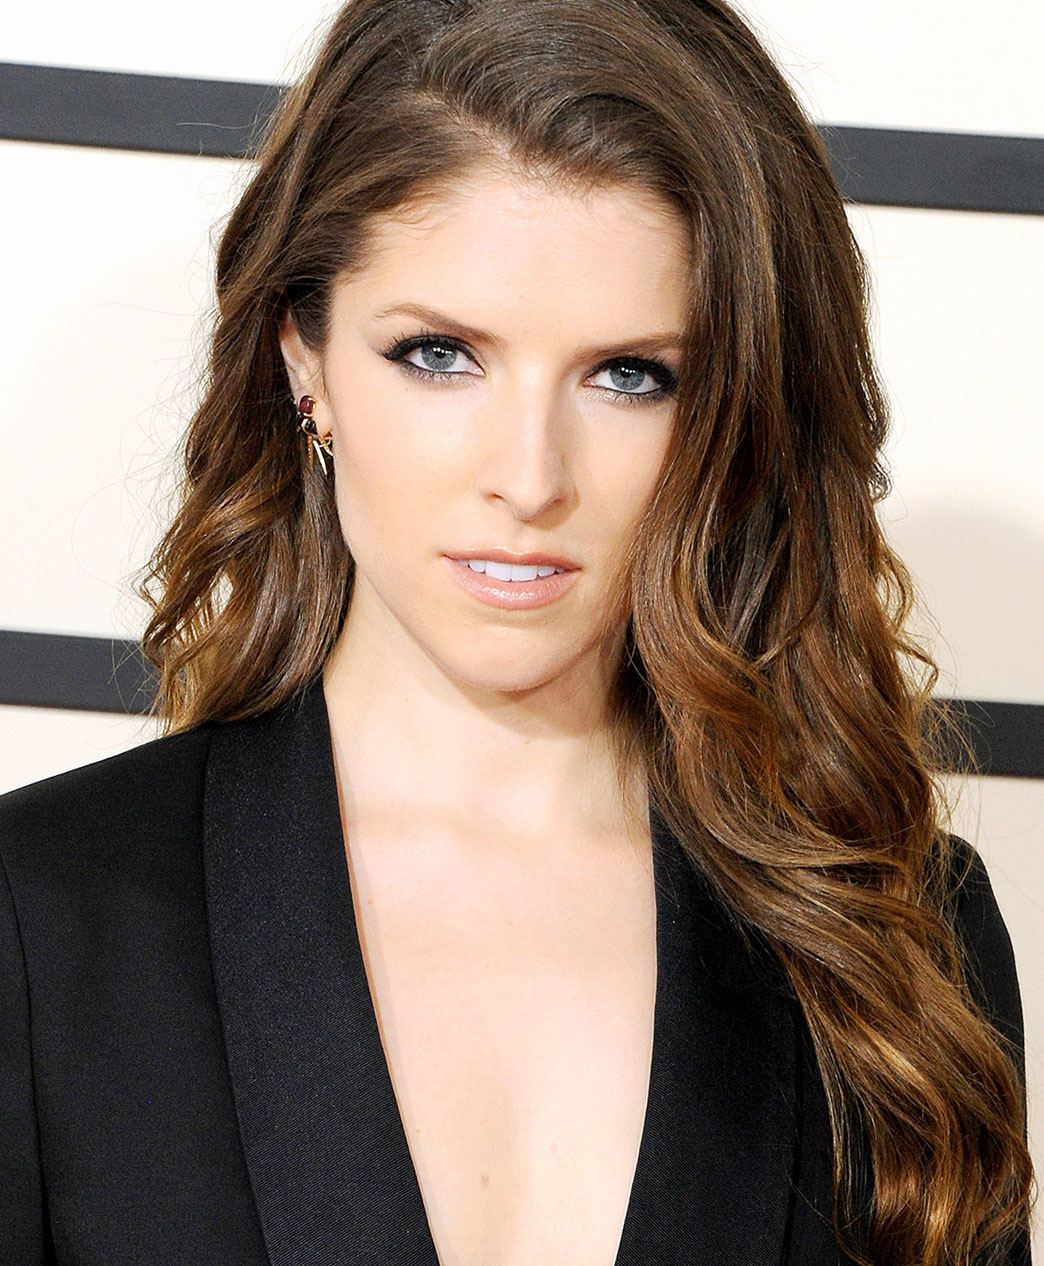 Boink Movie Actress Anna Kendrick Nude Leaked Pics -8660